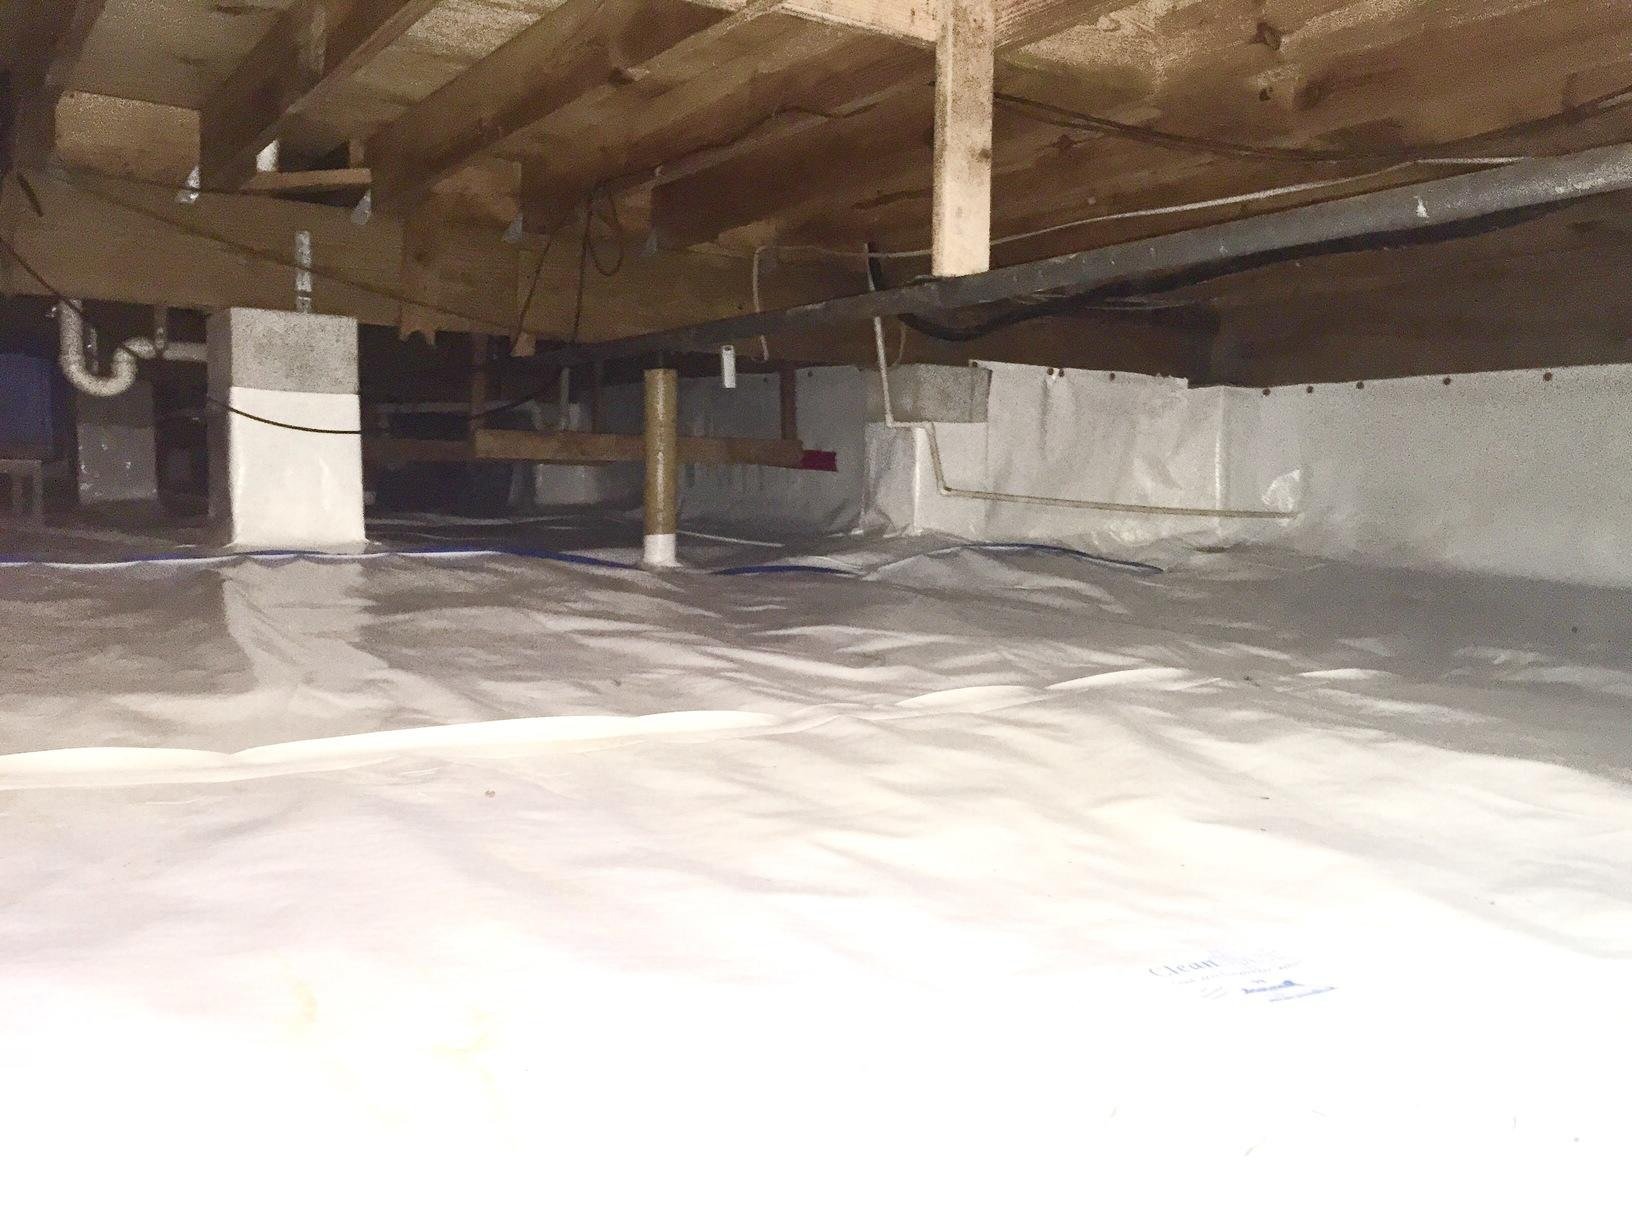 Crawl Space Encapsulation in Tallahassee, FL  - After Photo